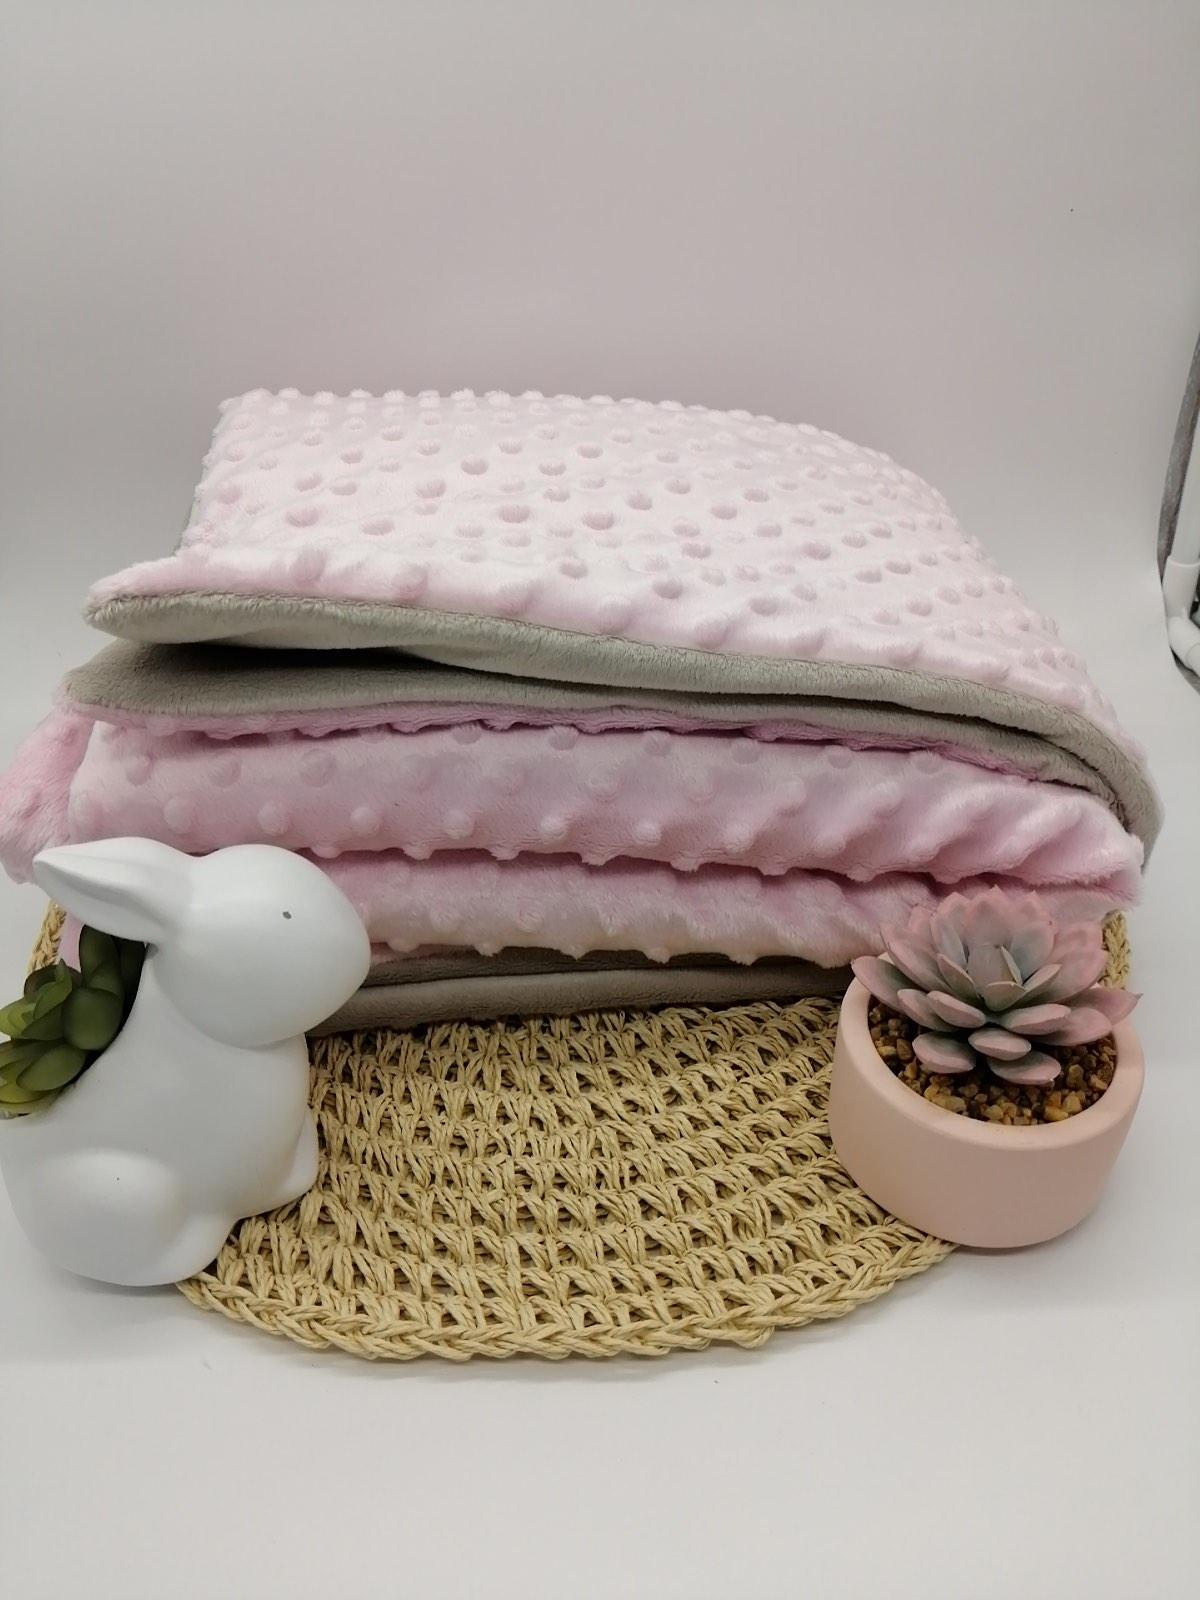 Couverture personnalise minky rose taupe1